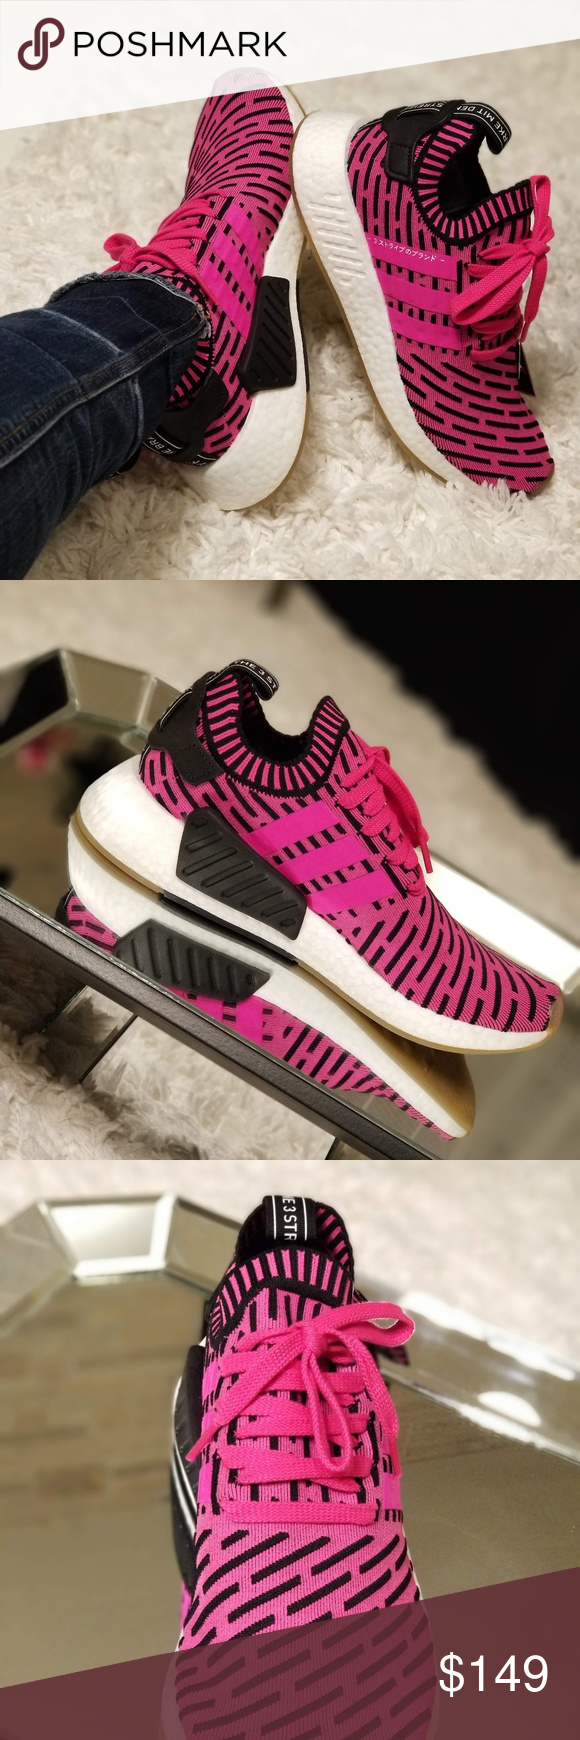 e985488de51d6 Adidas NMD R2 PK Japan Pack Release  These are a men s size 5 on the ...